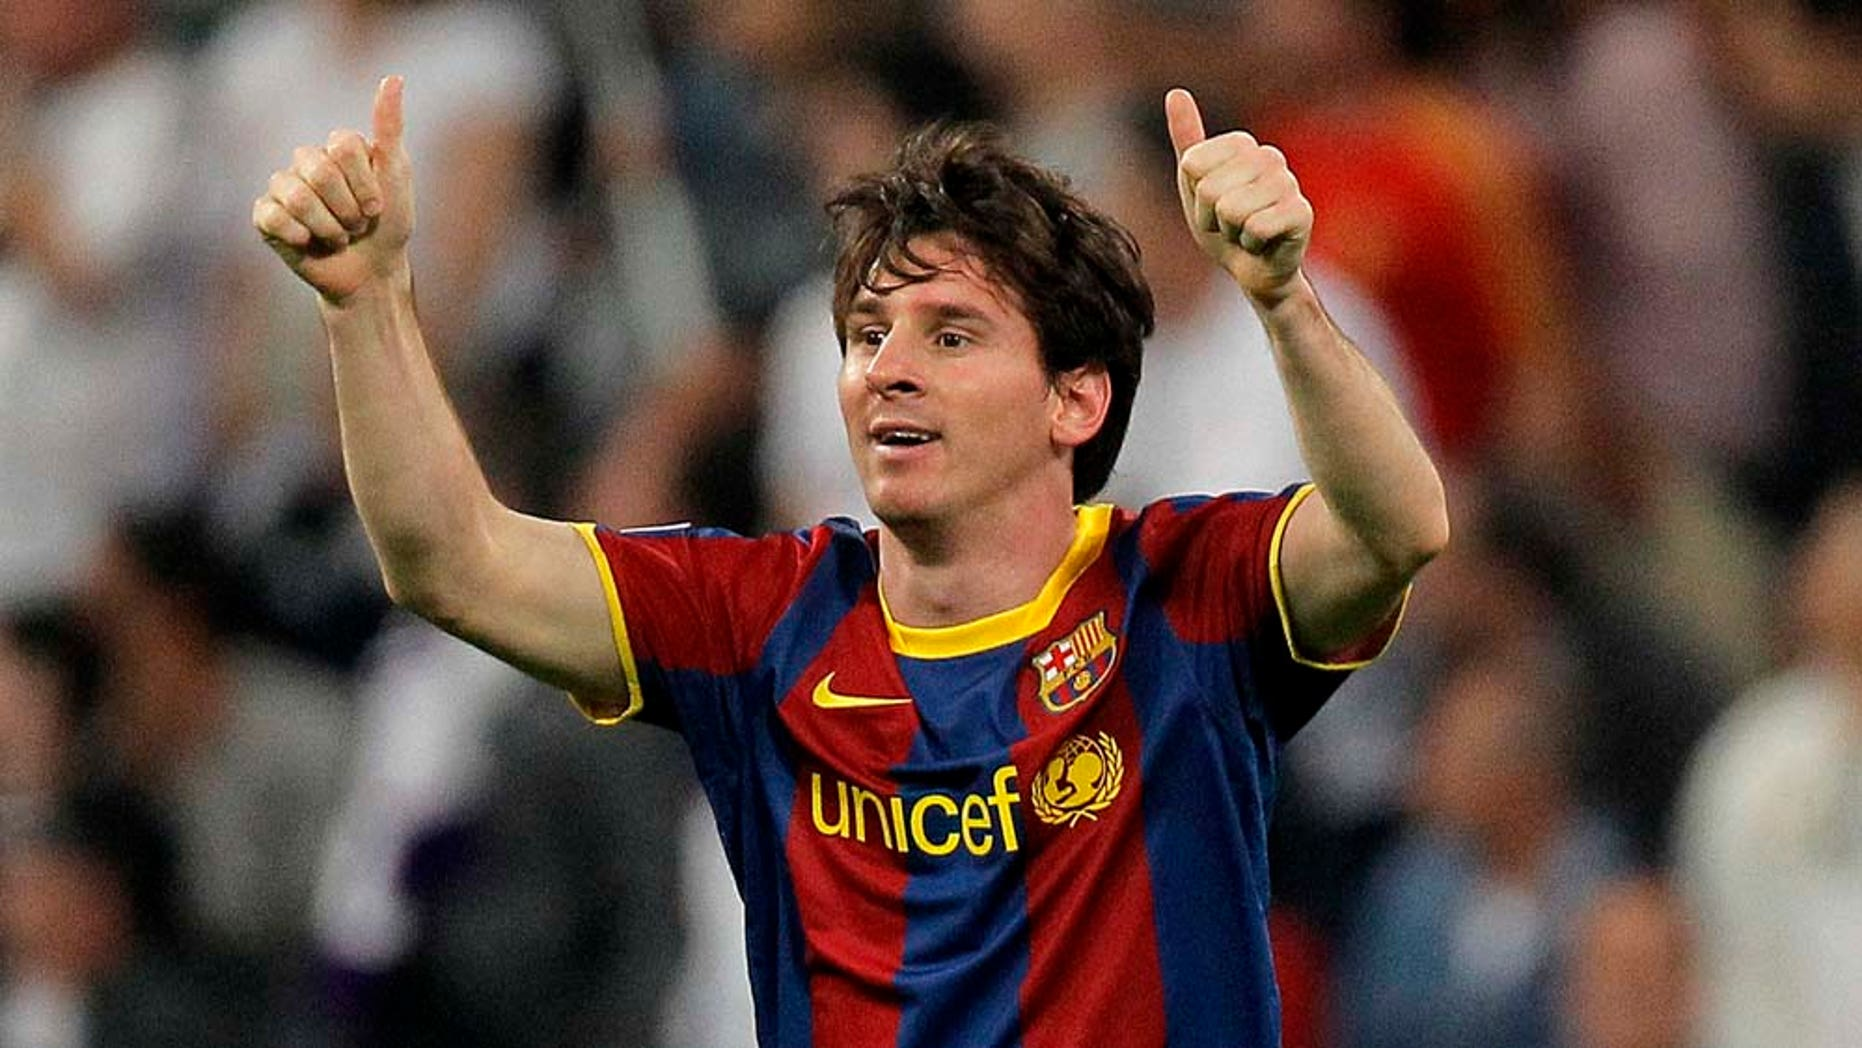 Apr 27: FC Barcelona's Lionel Messi from Argentina celebrates his goal during a semifinal, 1st leg Champions League soccer match against  Real Madrid at the Santiago Bernabeu stadium in Madrid.